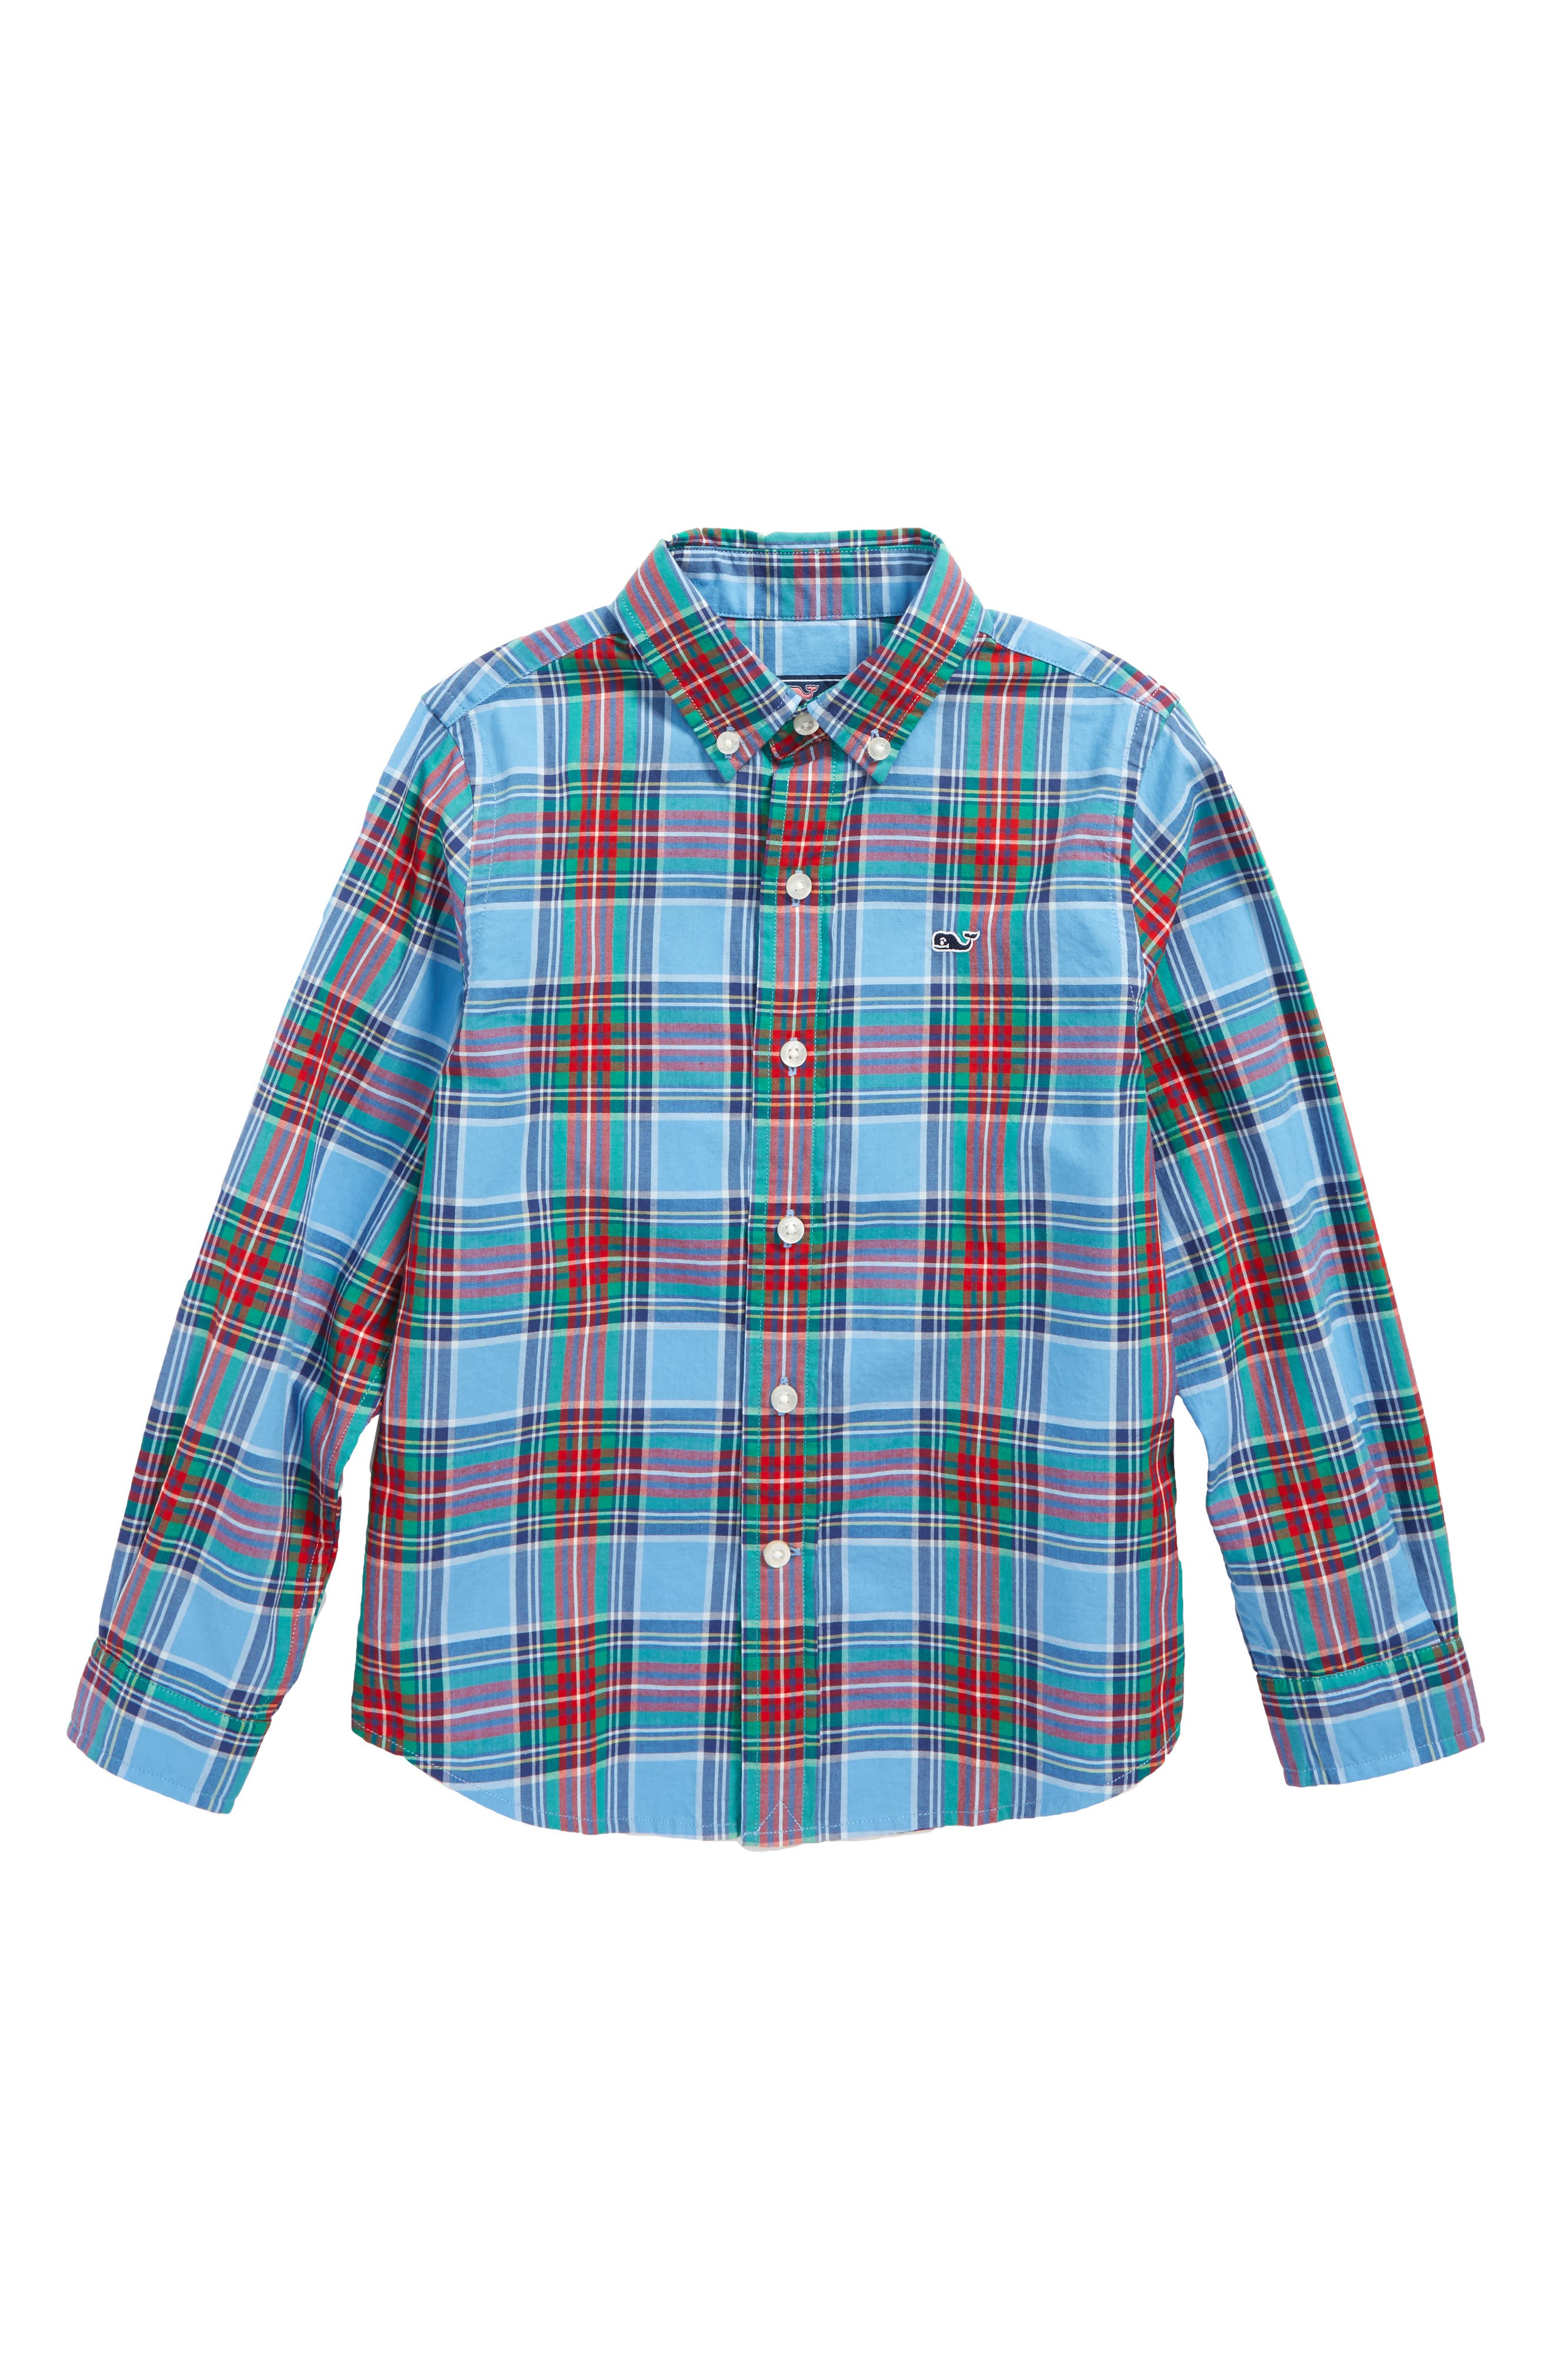 Belmont Plaid Whale Shirt,                             Main thumbnail 1, color,                             447